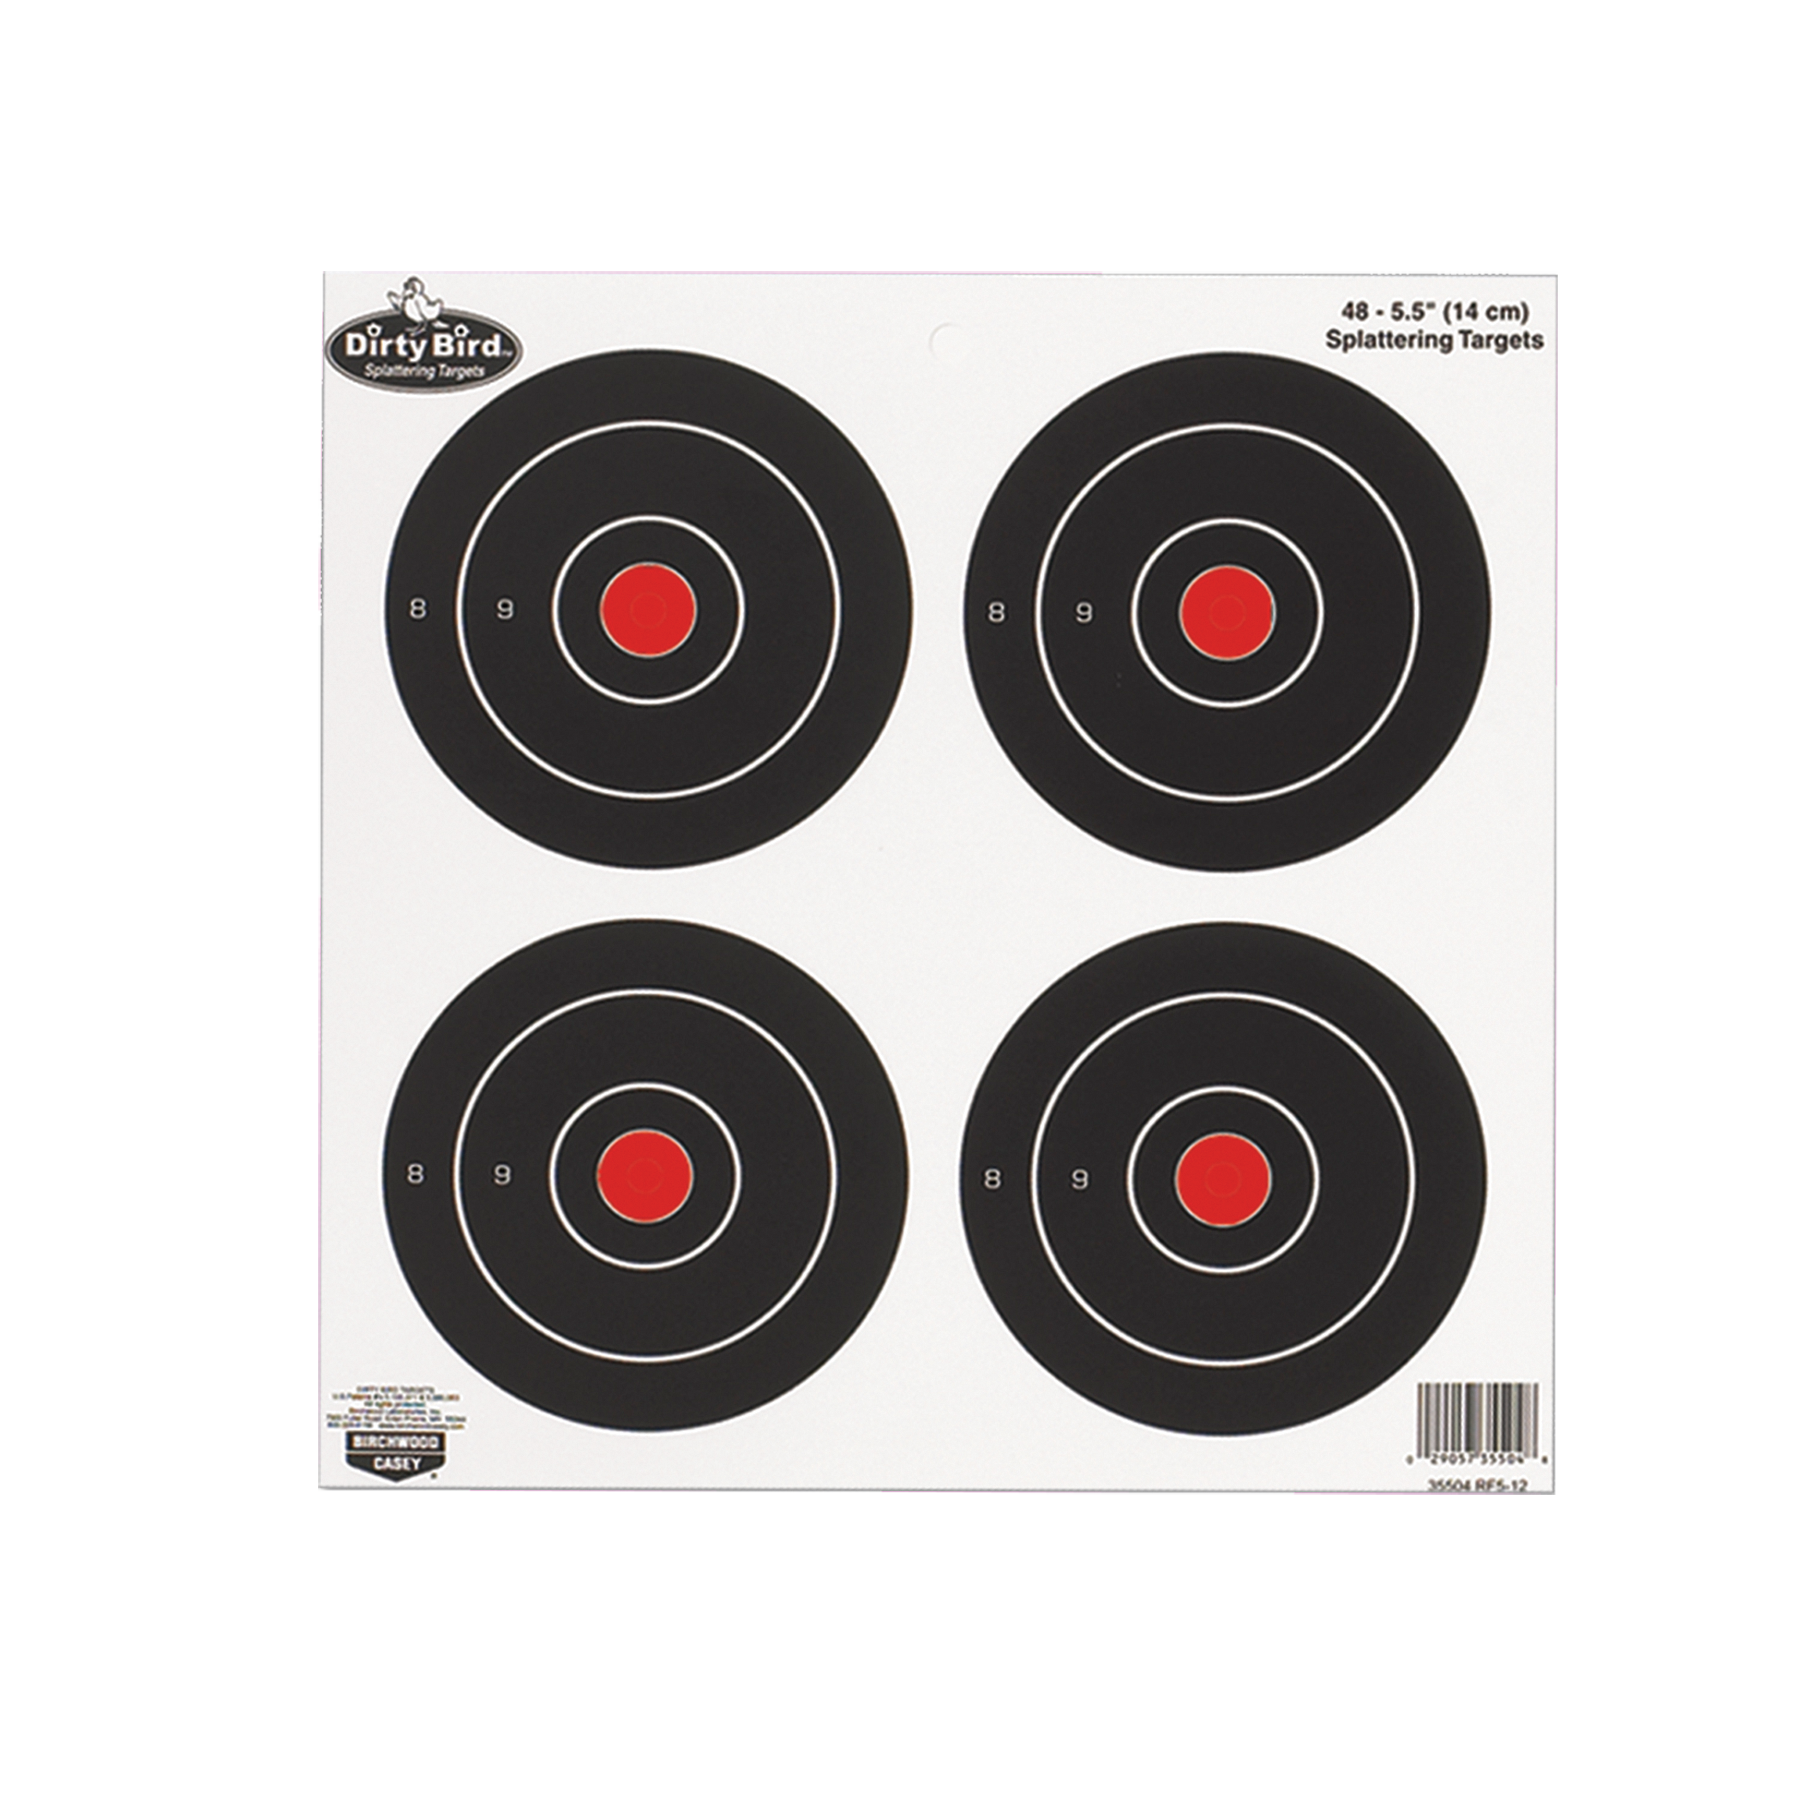 Birchwood Casey 35504 Dirty Bird Target 5.5